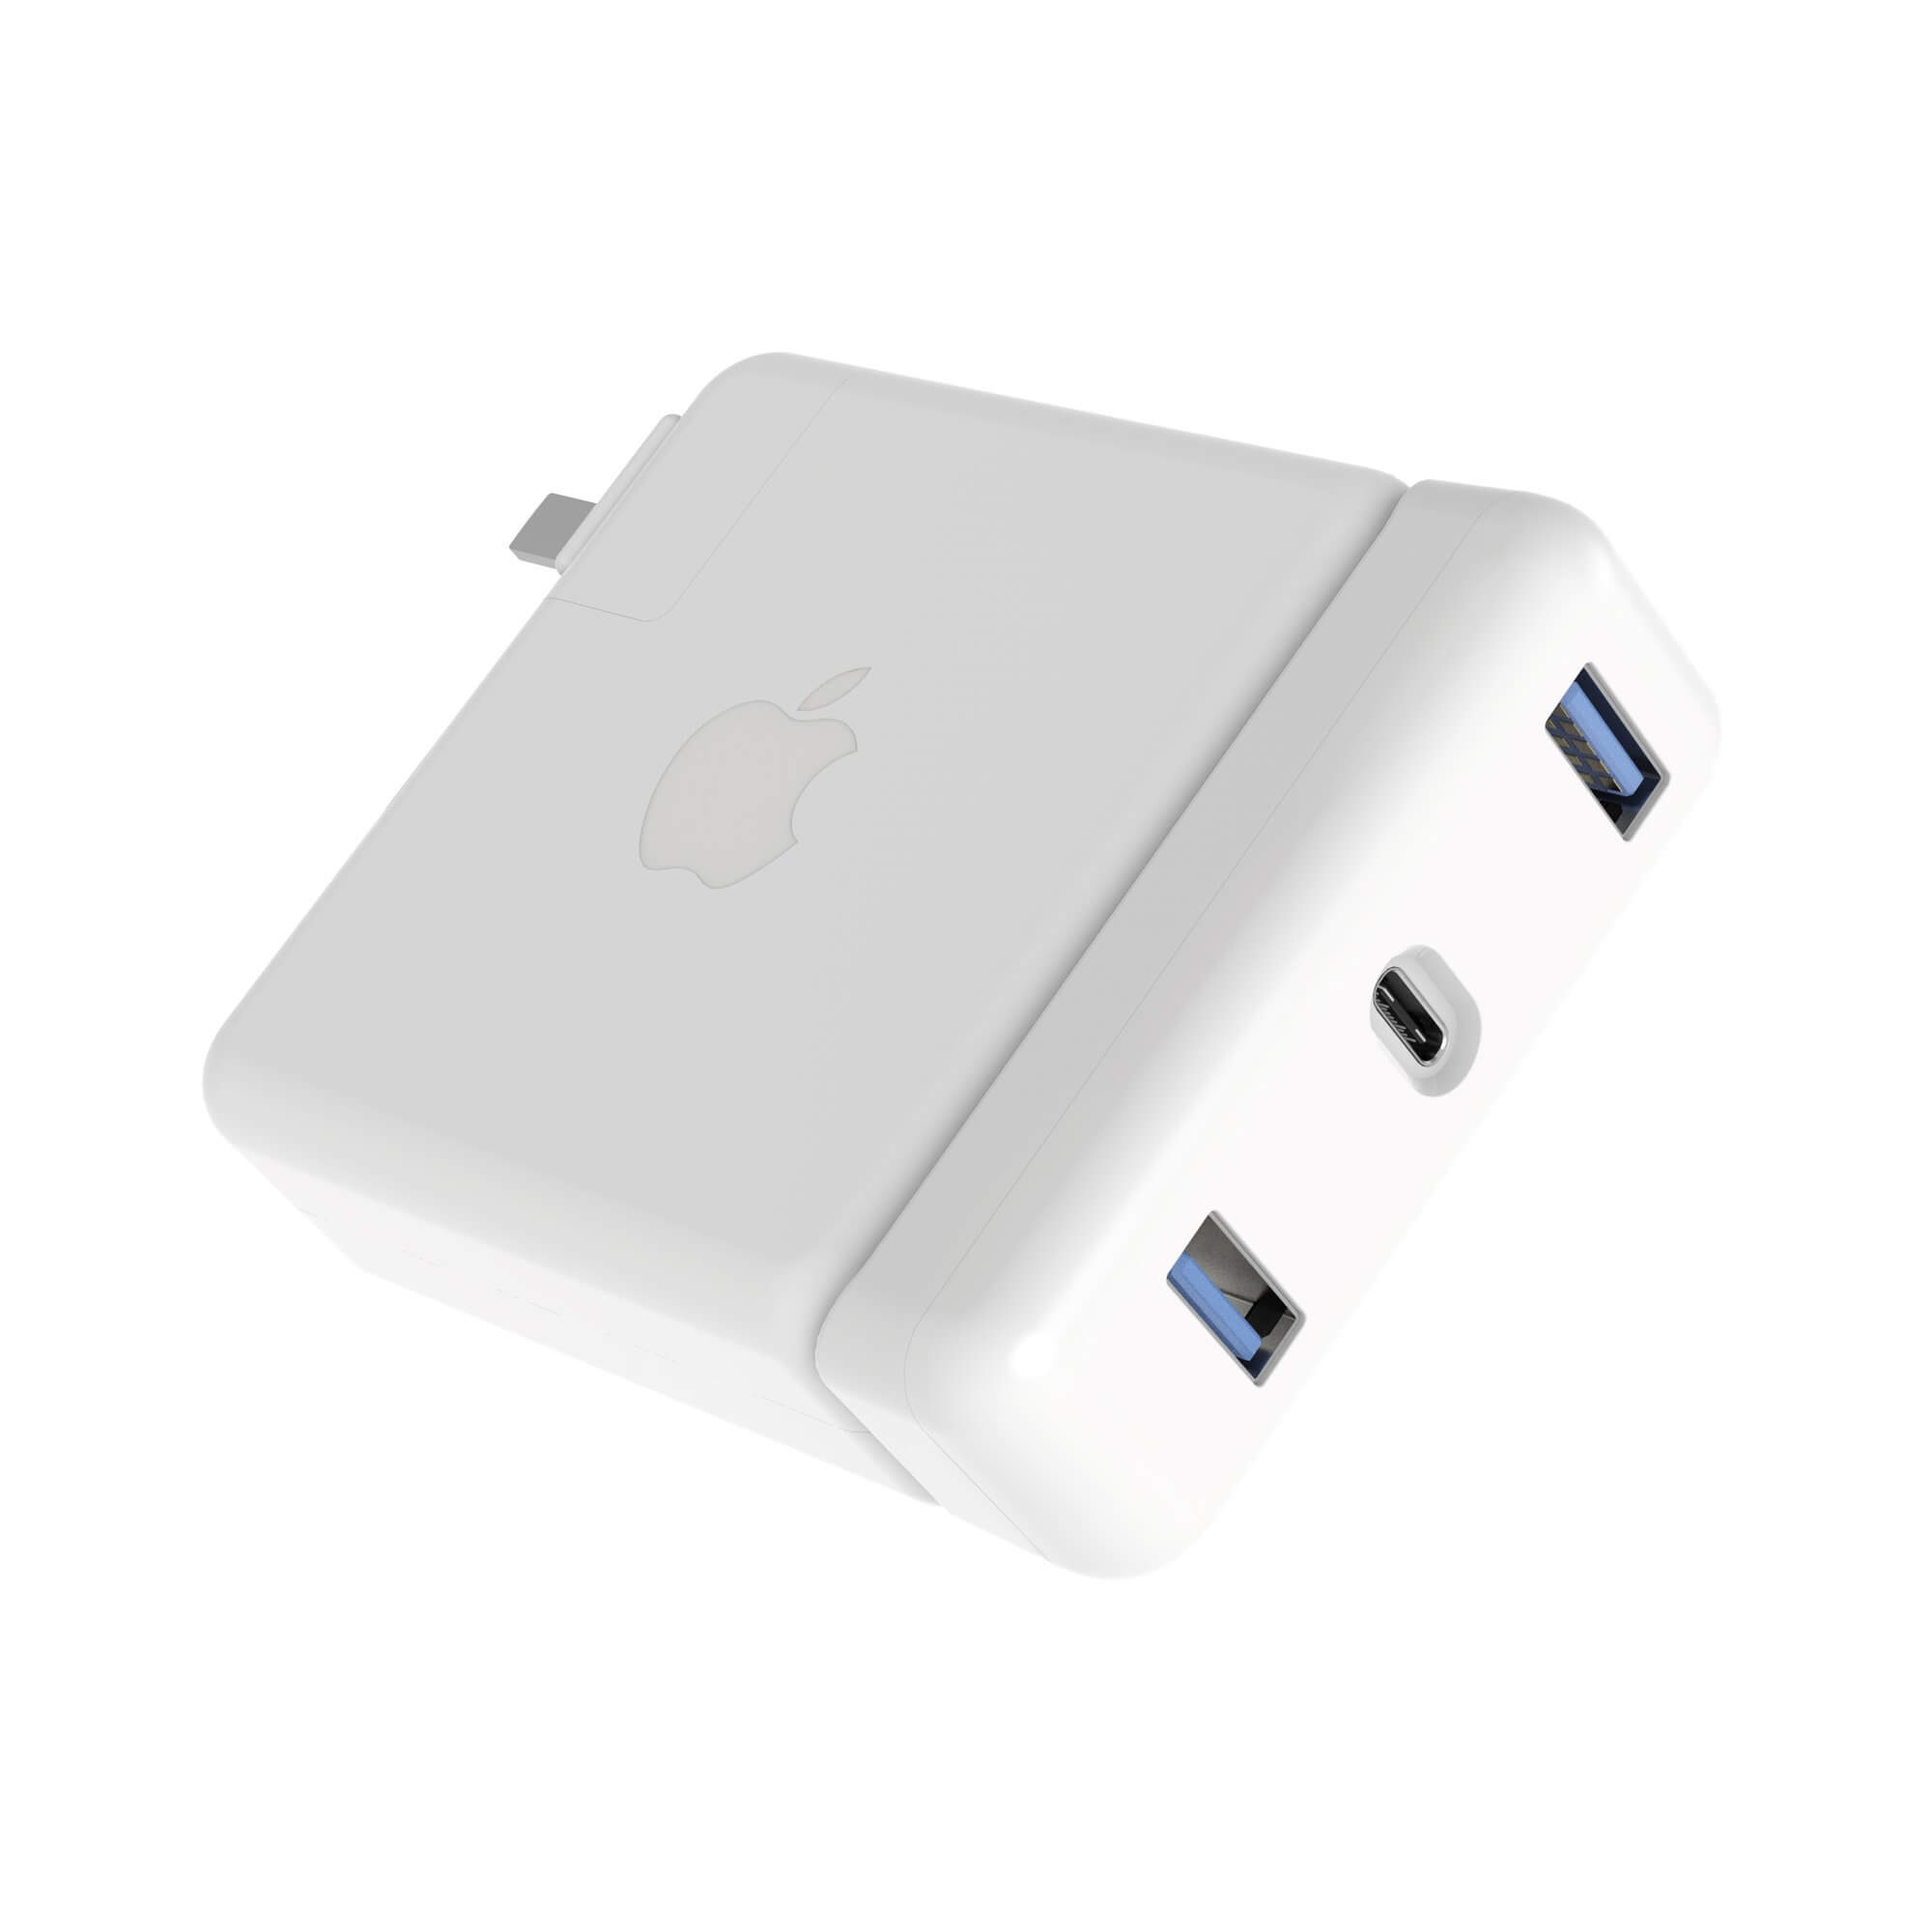 HyperDrive USB-C Hub 87W Power Adapter - USB-C хъб с два USB изхода и USB-C изход за Apple 87W USB-C Power Adapter (бял)